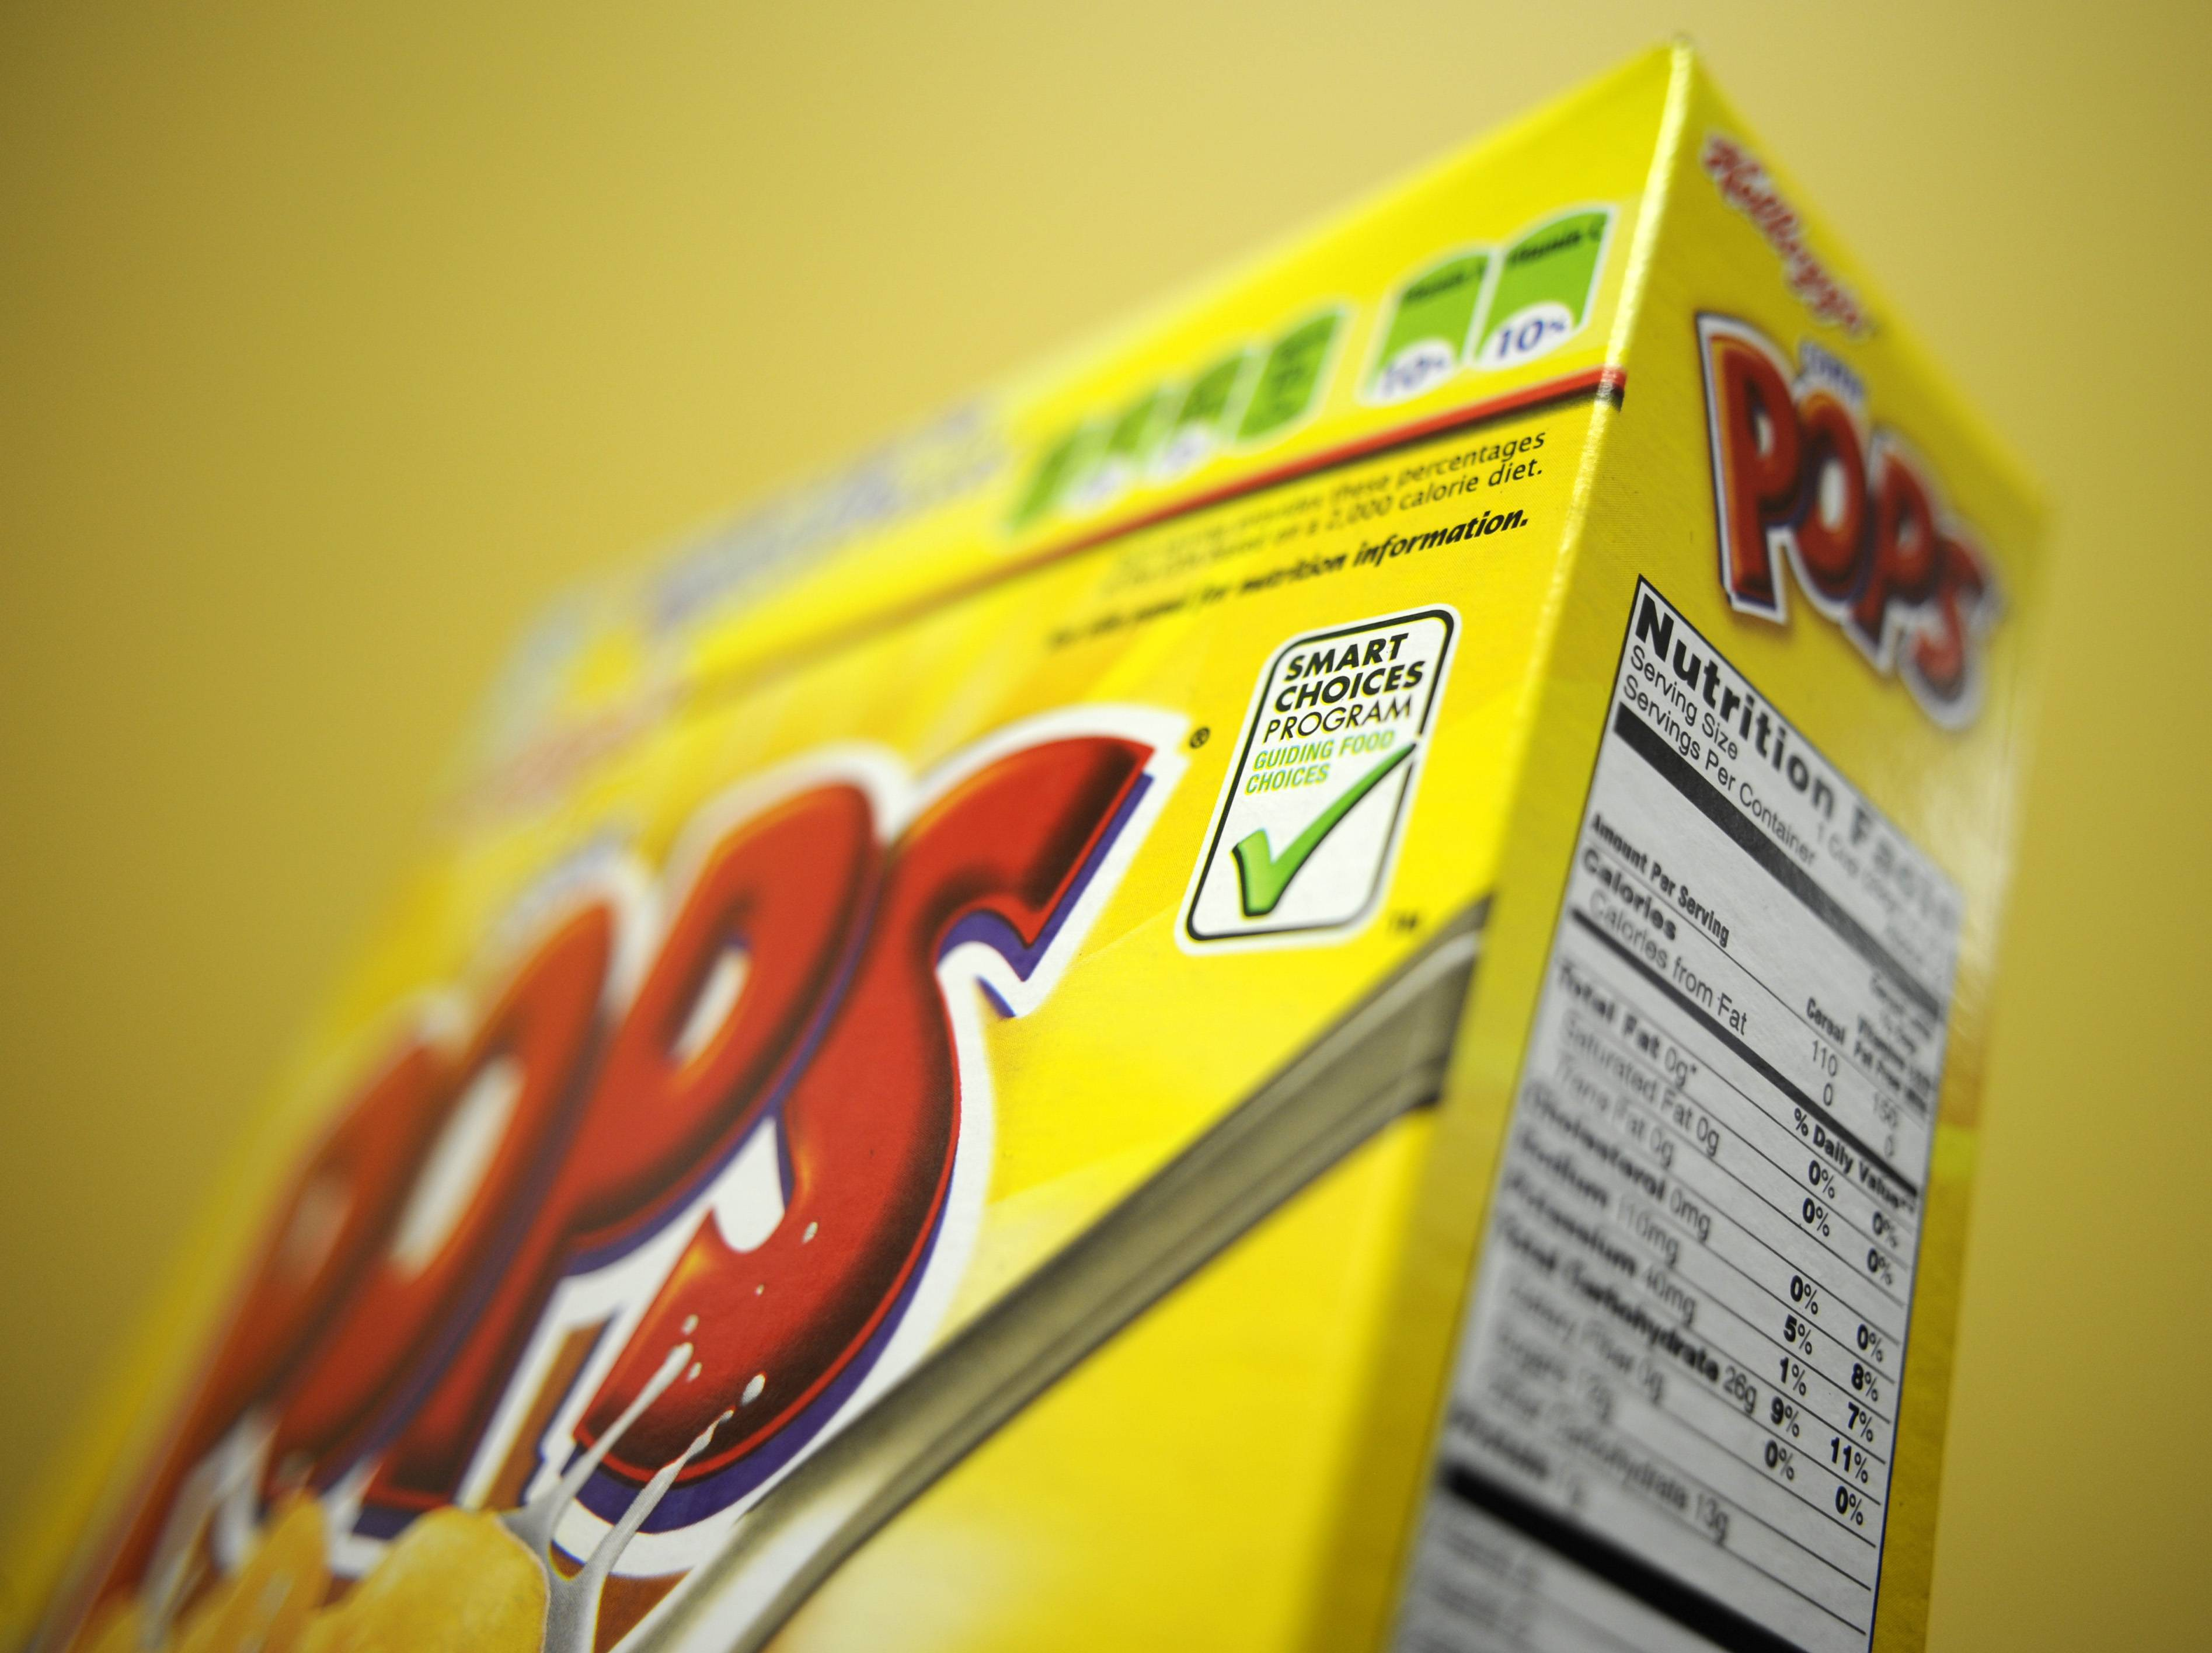 Nutrition facts labels on food packages list ingredients and nutrient levels, but they don't tell consumers outright if a food is good for them. Public health advocates say that information is necessary to help consumers make healthy choices at the supermarket. They'd like to see labels on the front of packages and a clearer statement of which ingredients are good and which should be avoided.